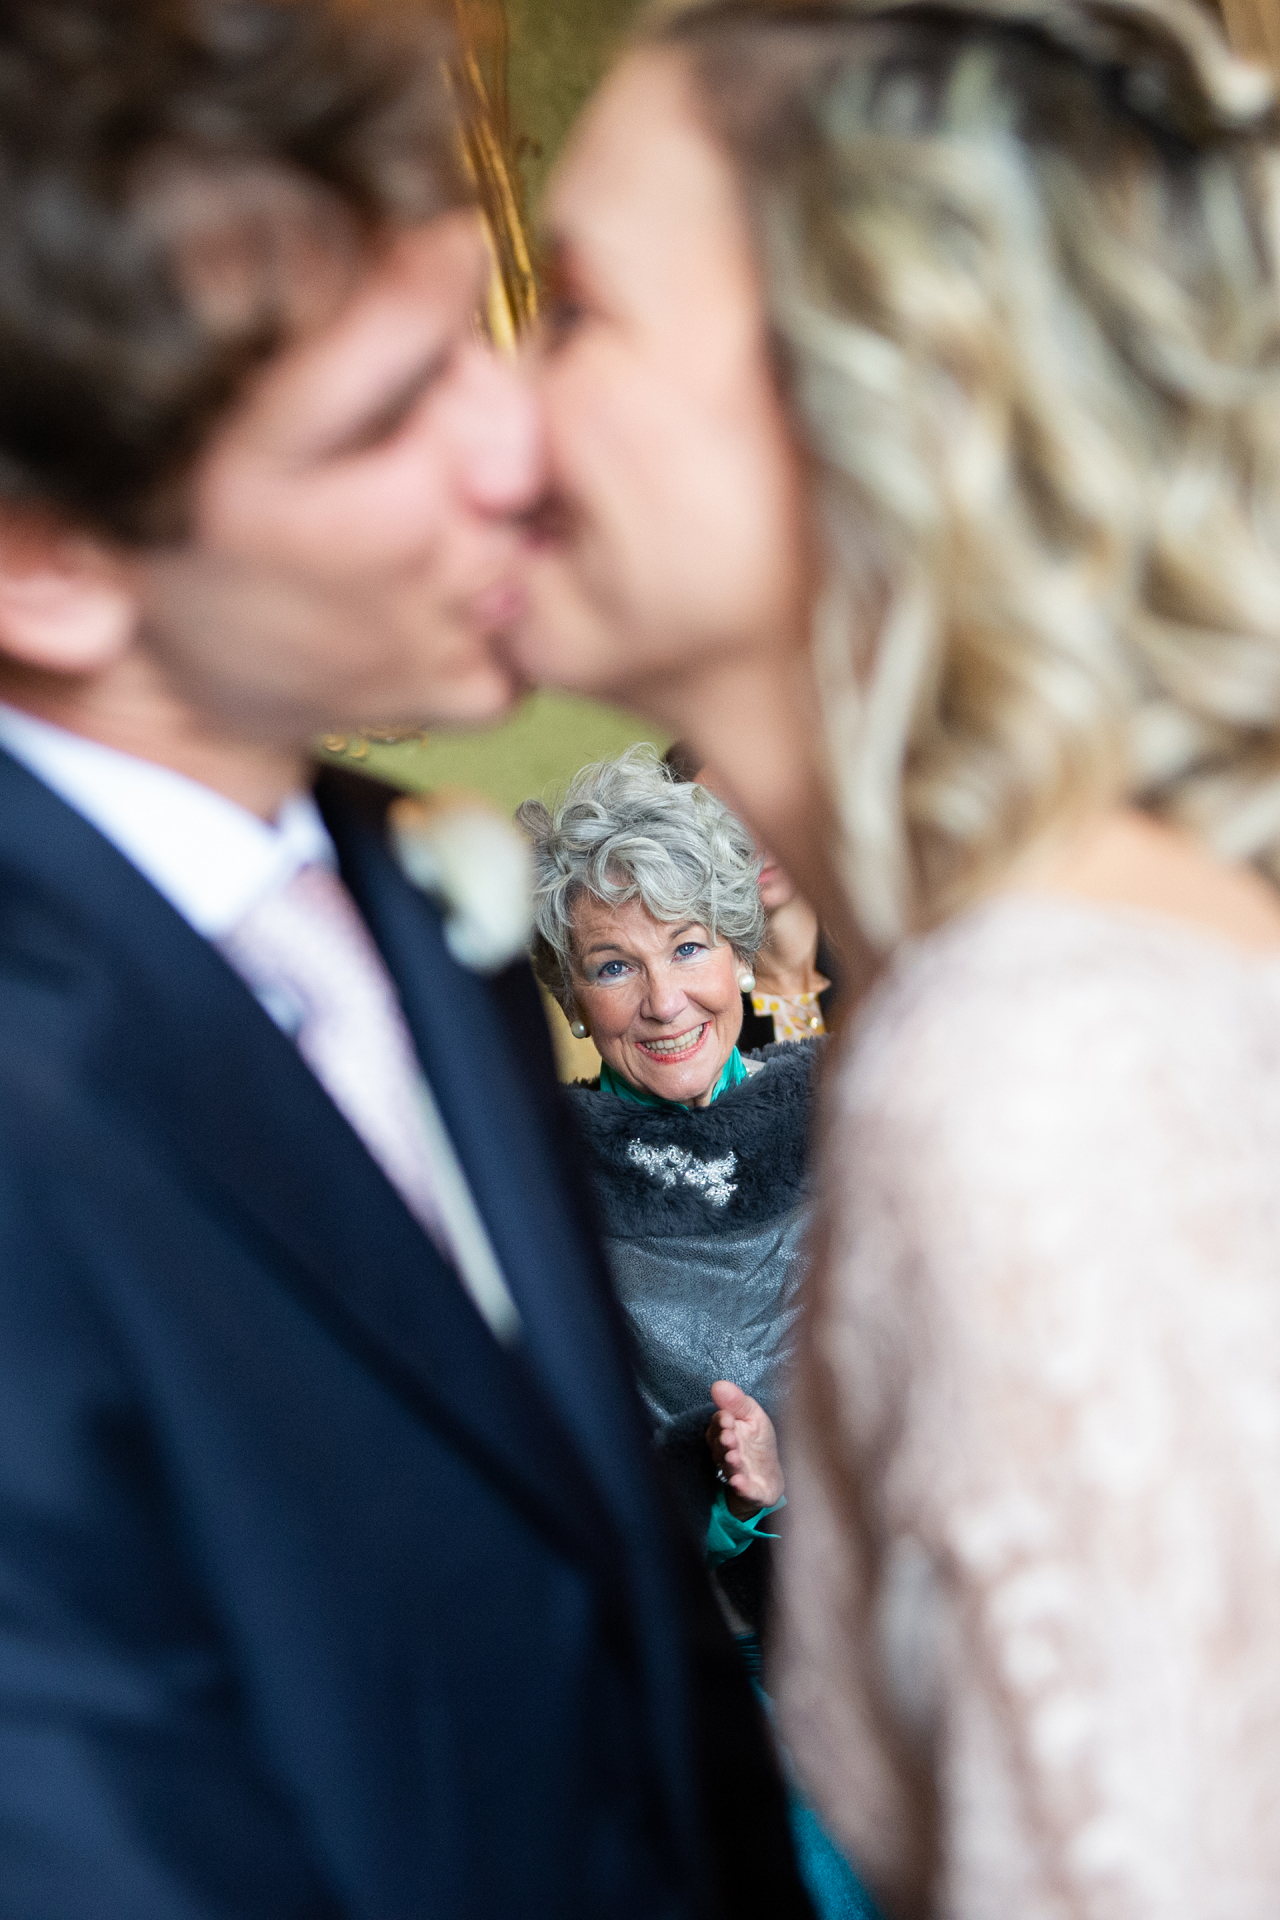 Mother in law seeing the First Kiss between the Bride and Groom inside an Hypothetical heart at an Italy, Lombardia, Pavia elopement